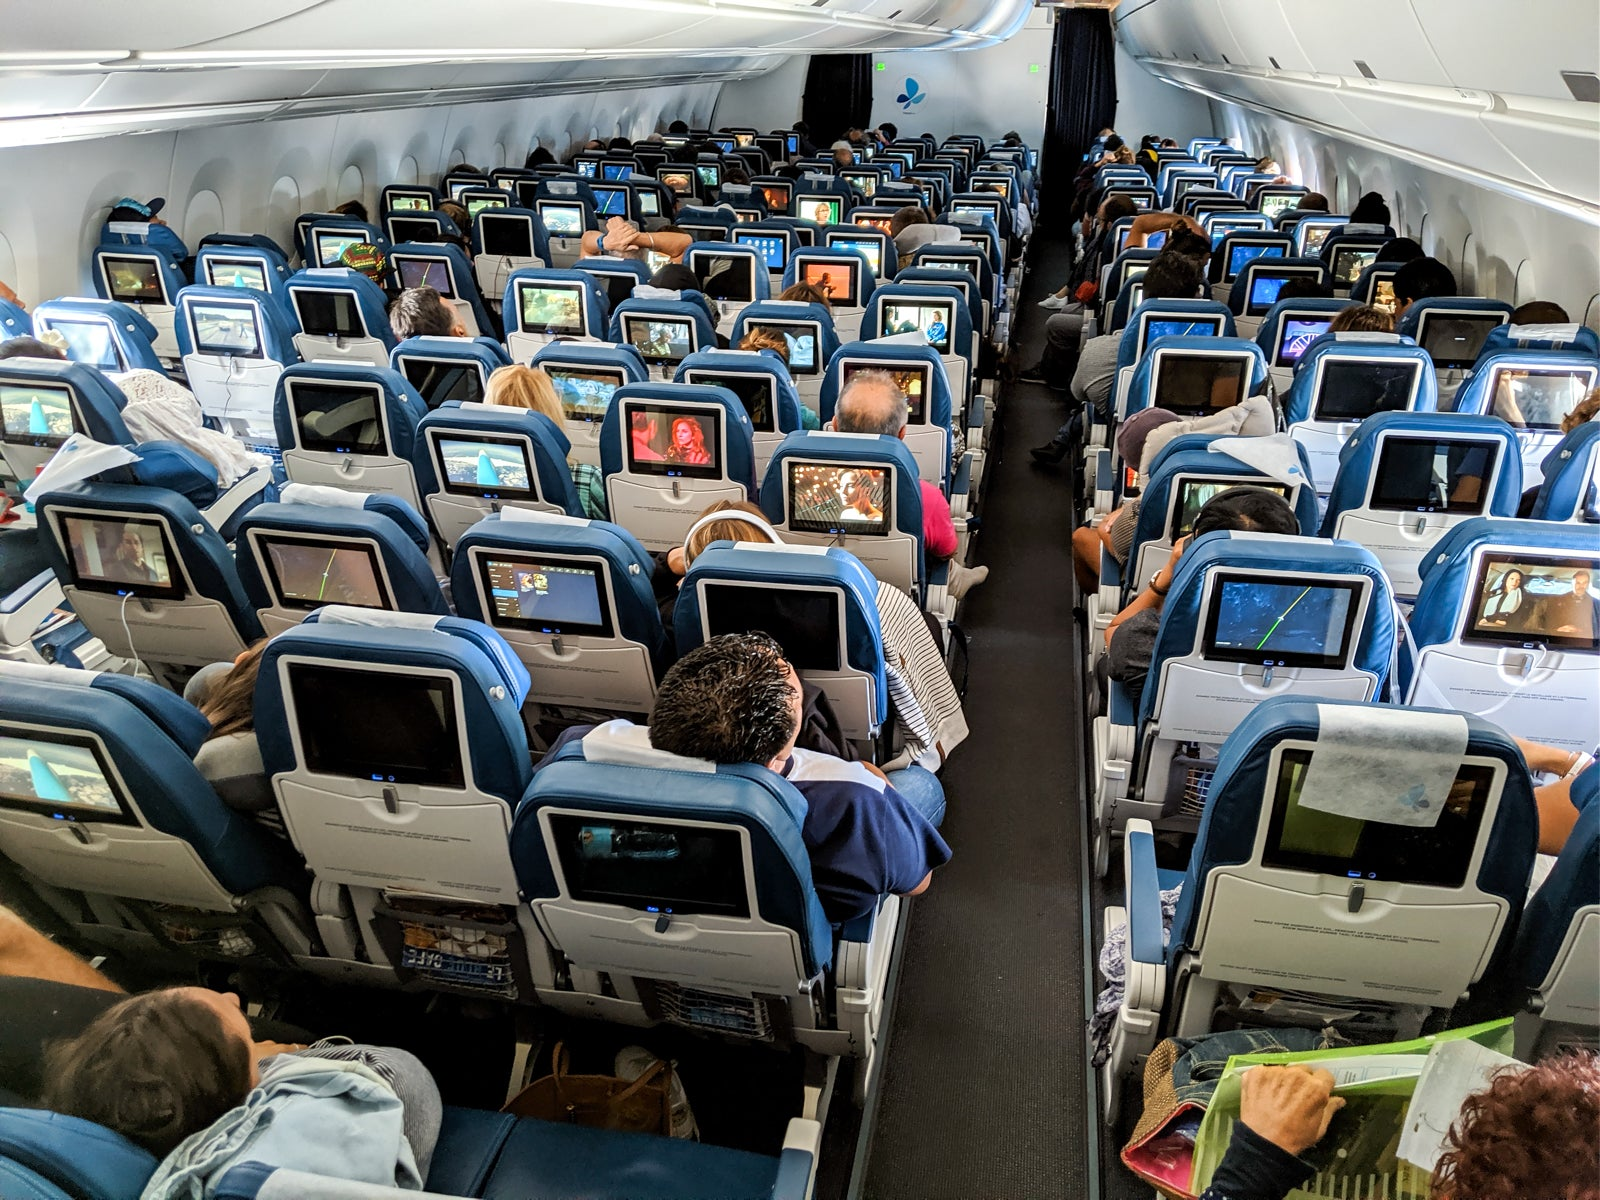 How to determine if your flight will be full